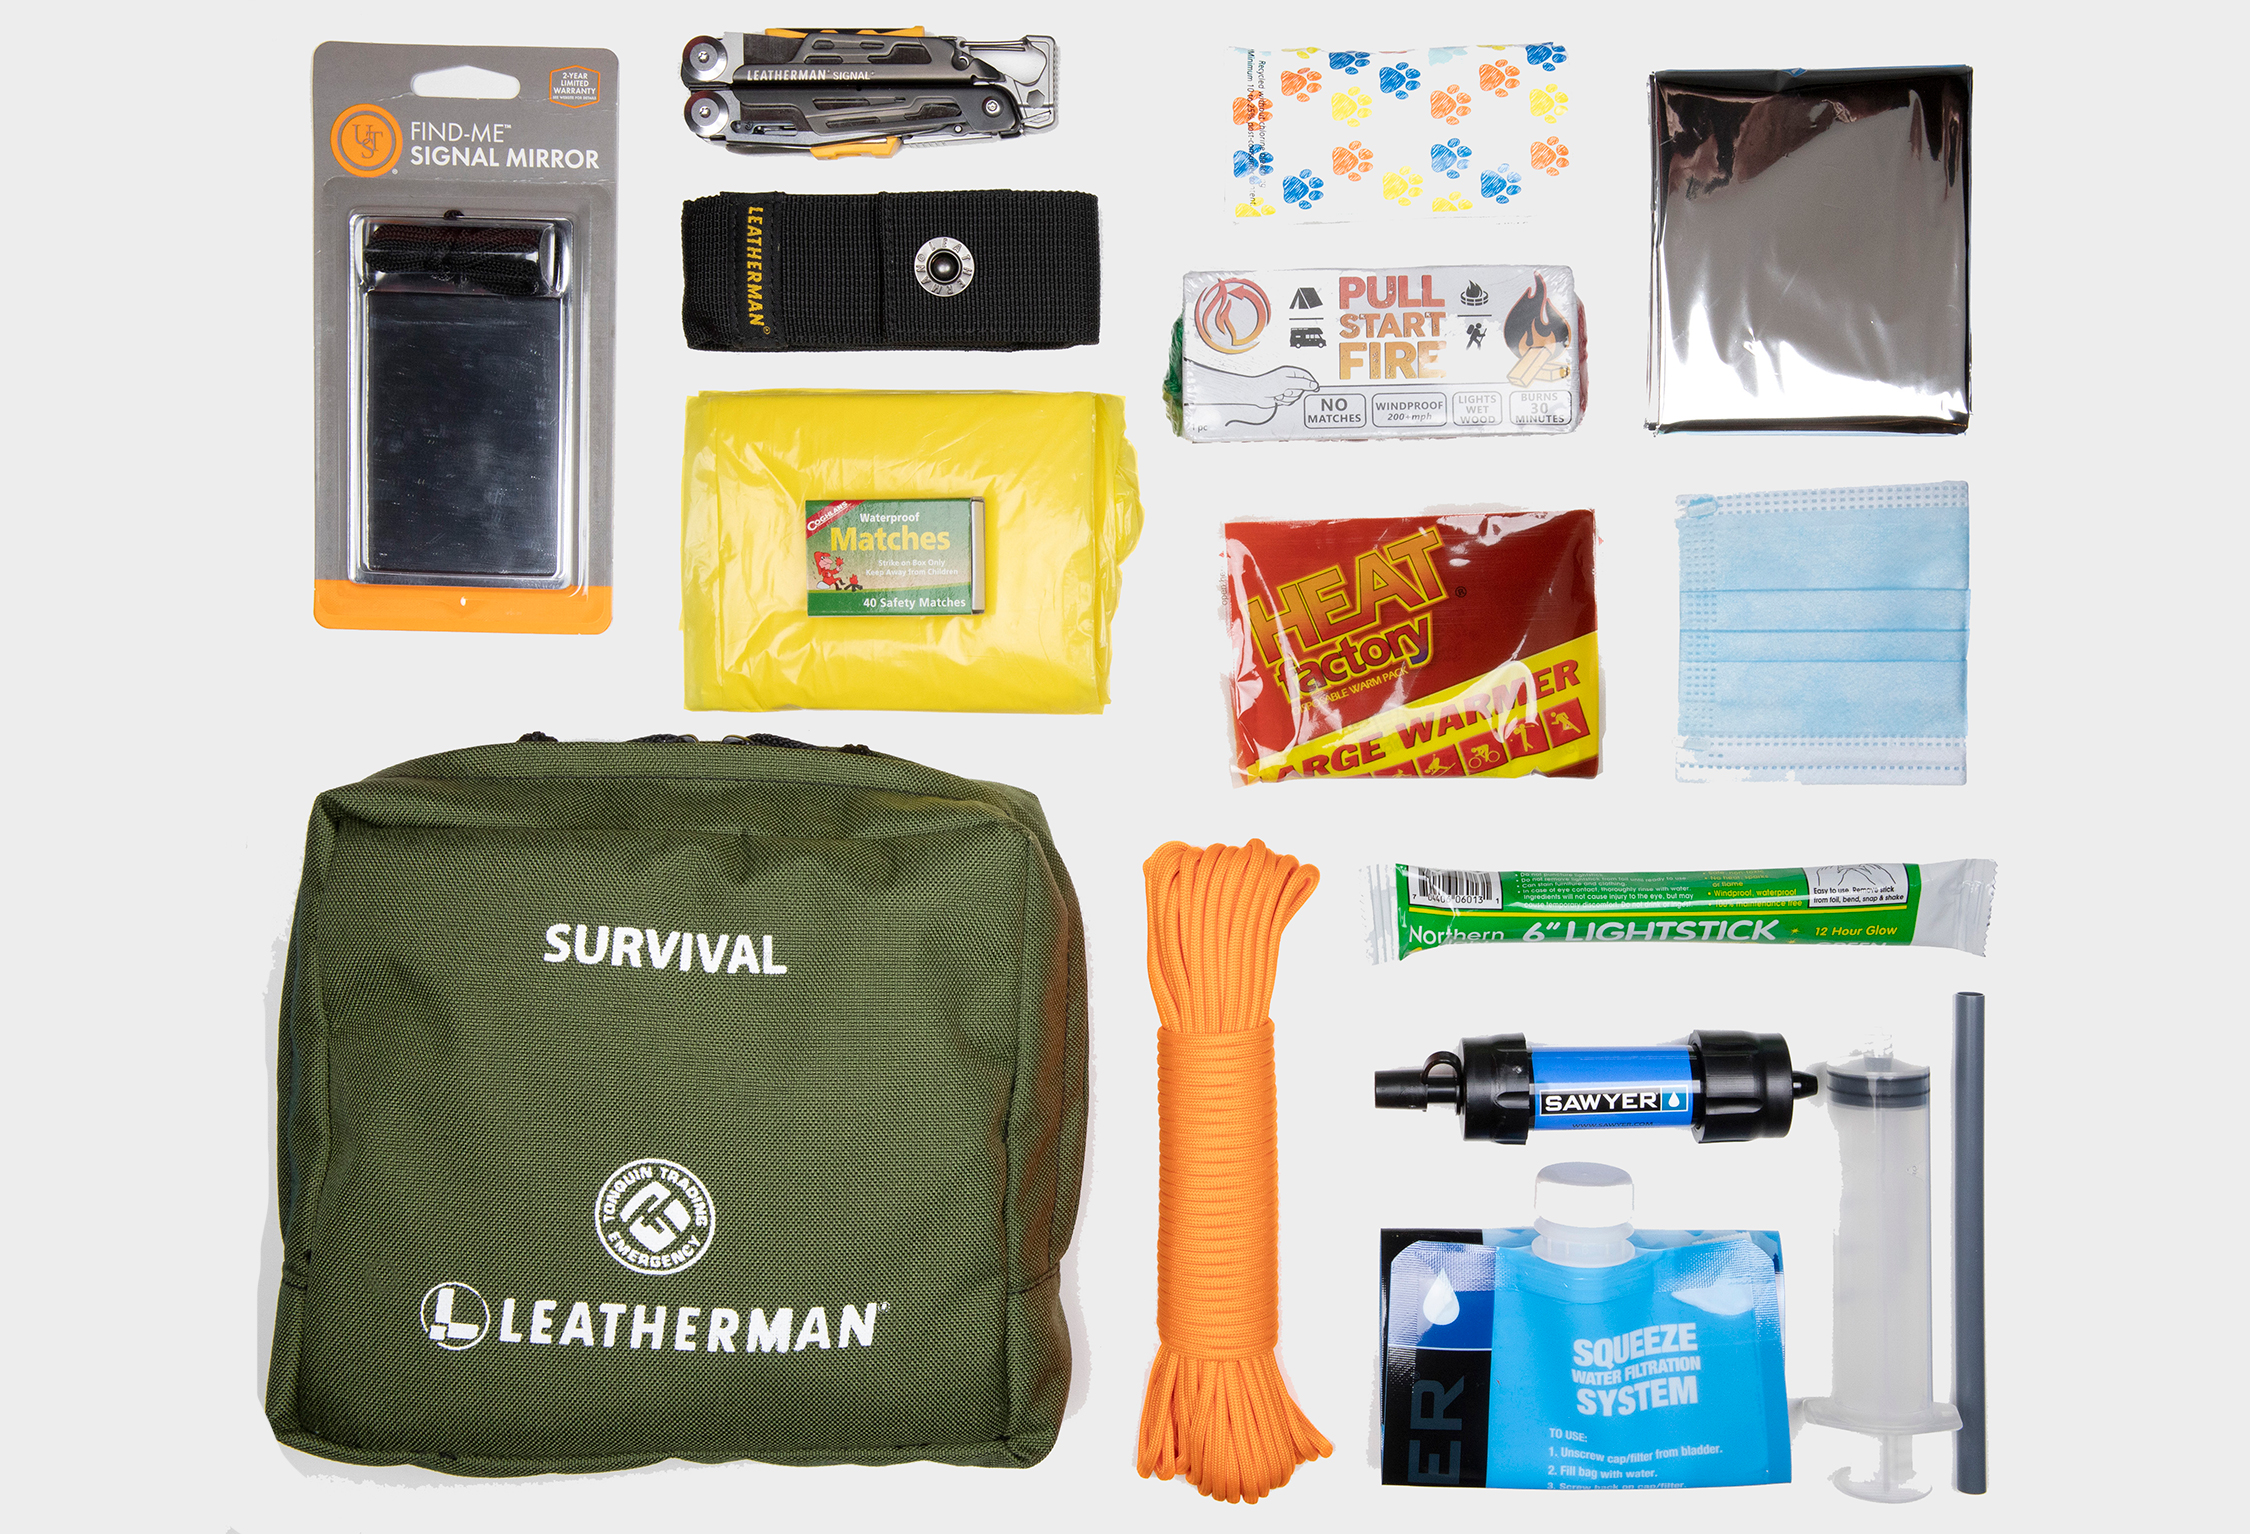 Leatherman Signal Survival Kit